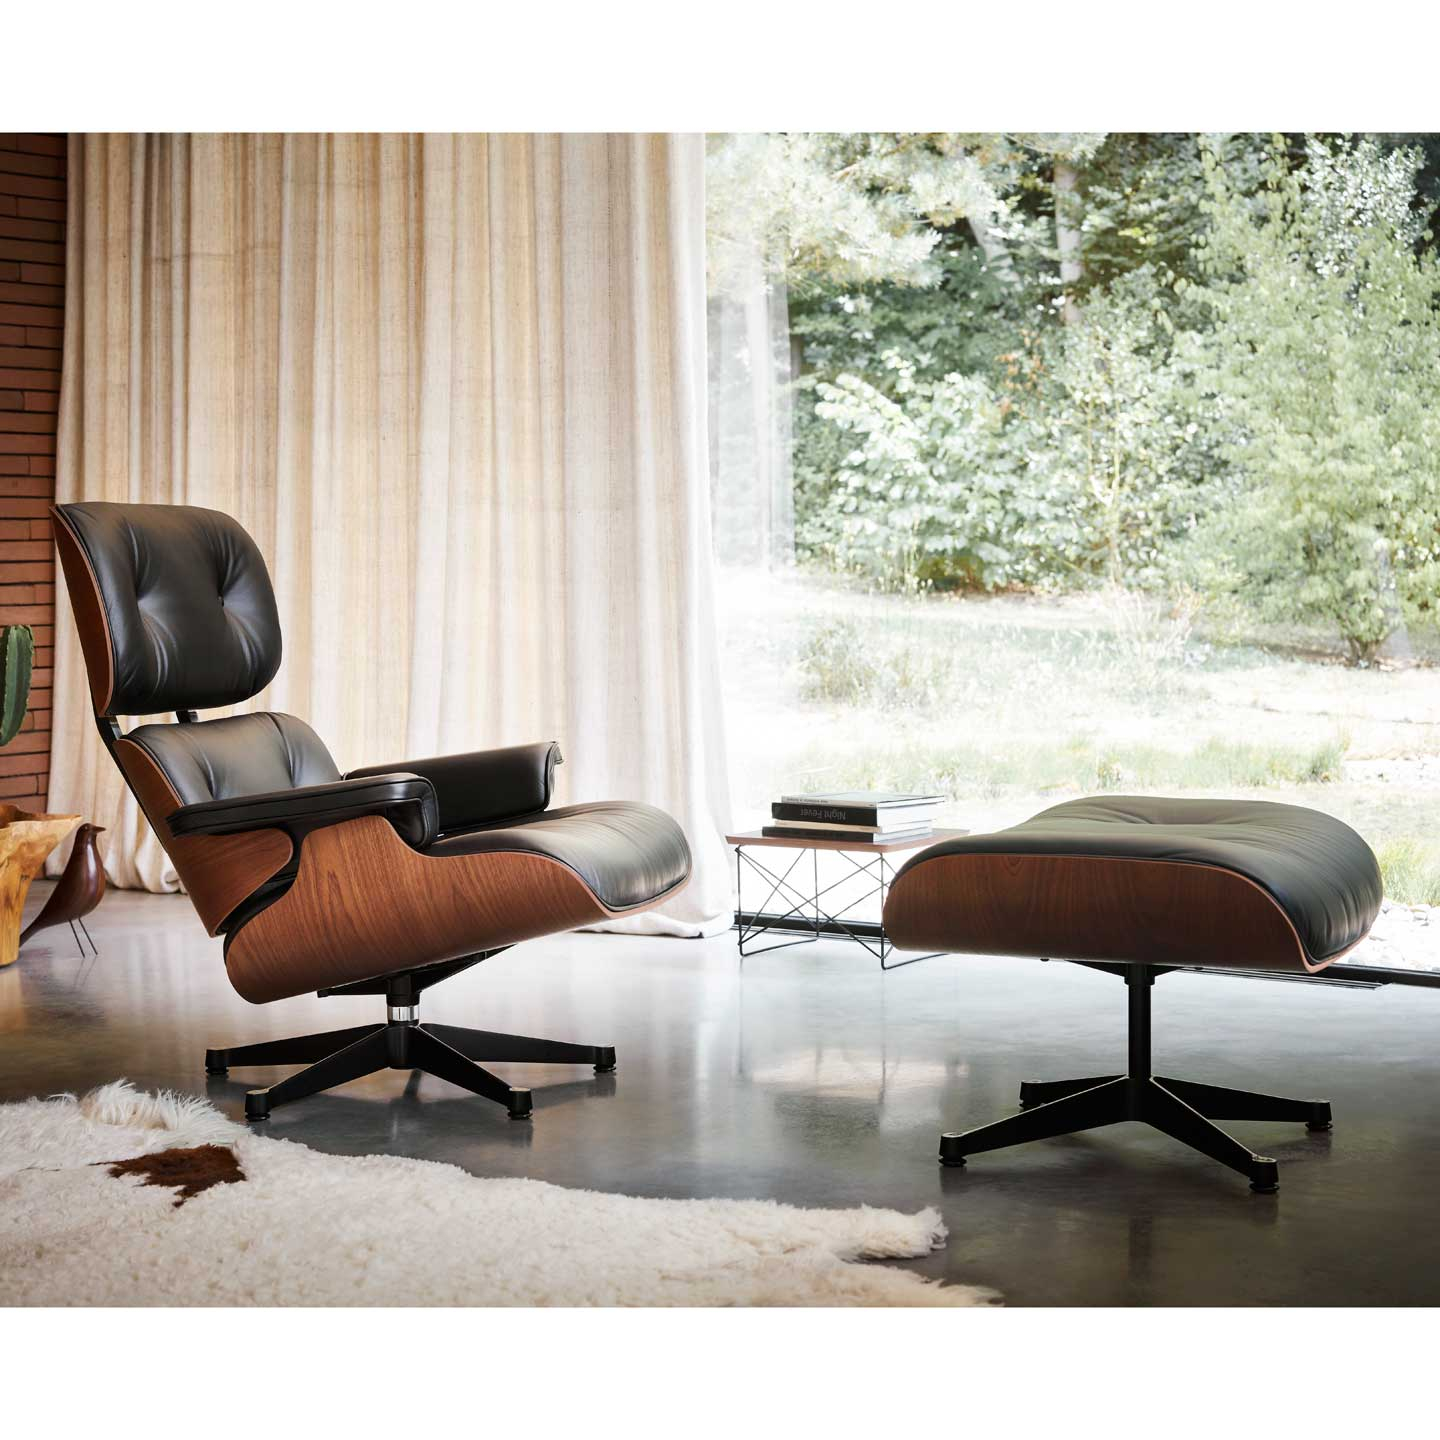 Eames Lounge Chair and Ottoman - Mahogany